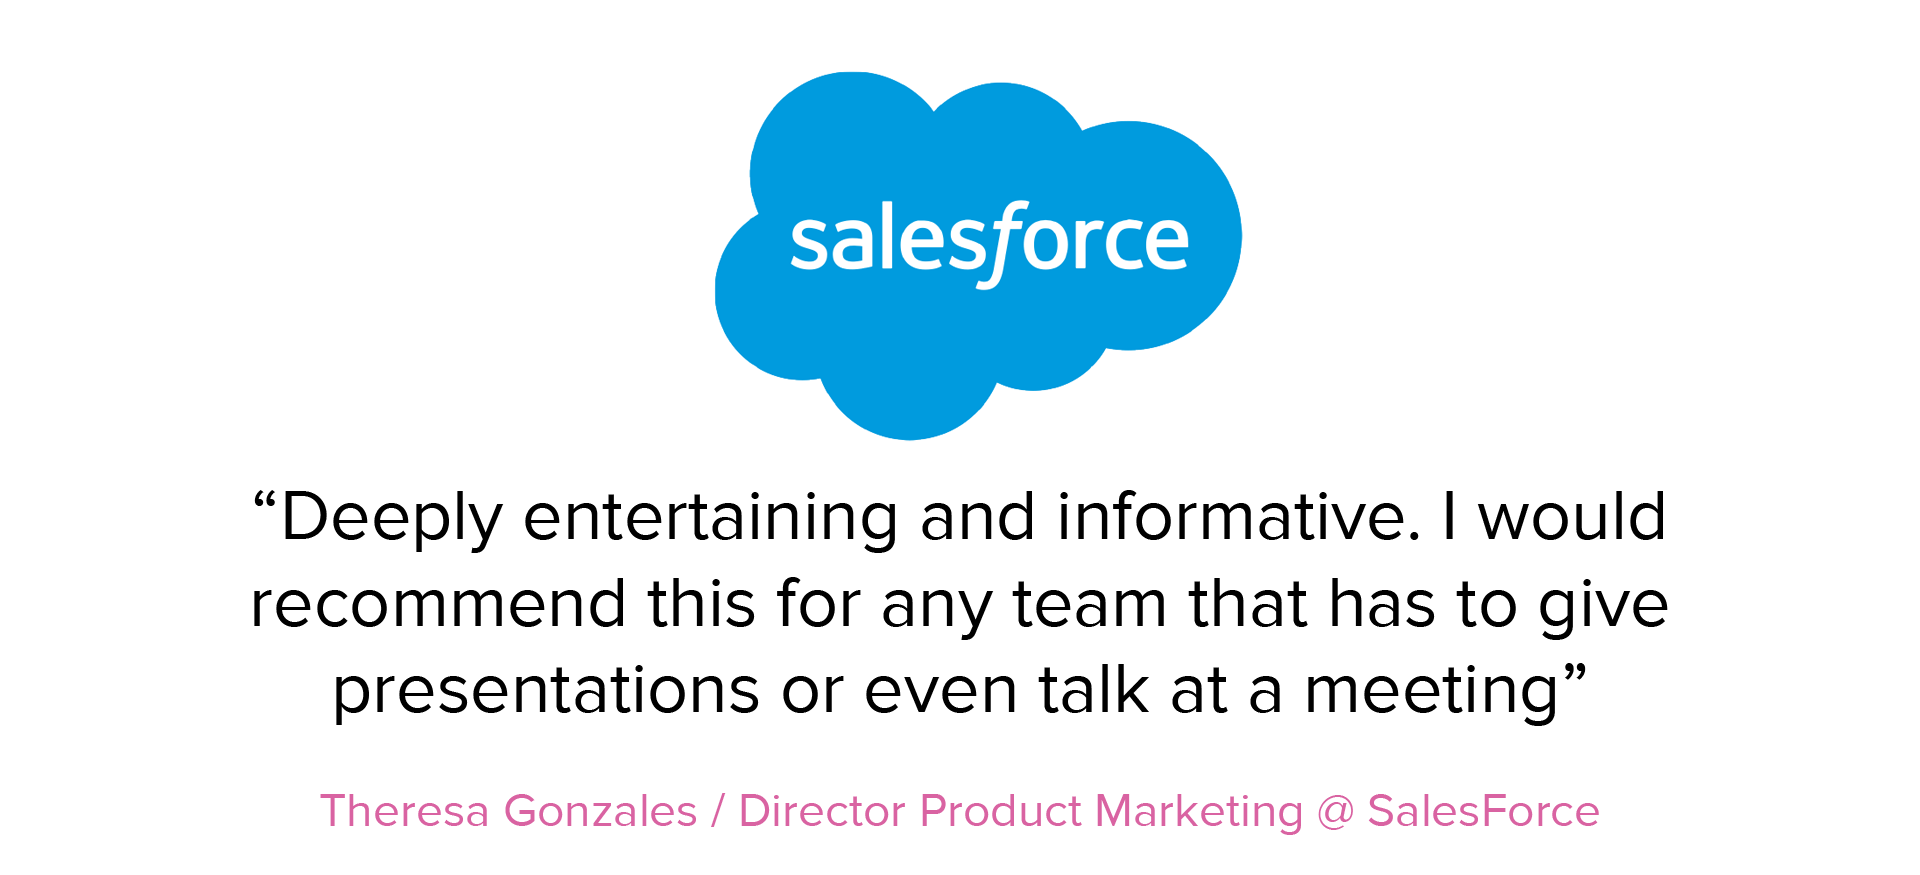 cred_salesforce.png